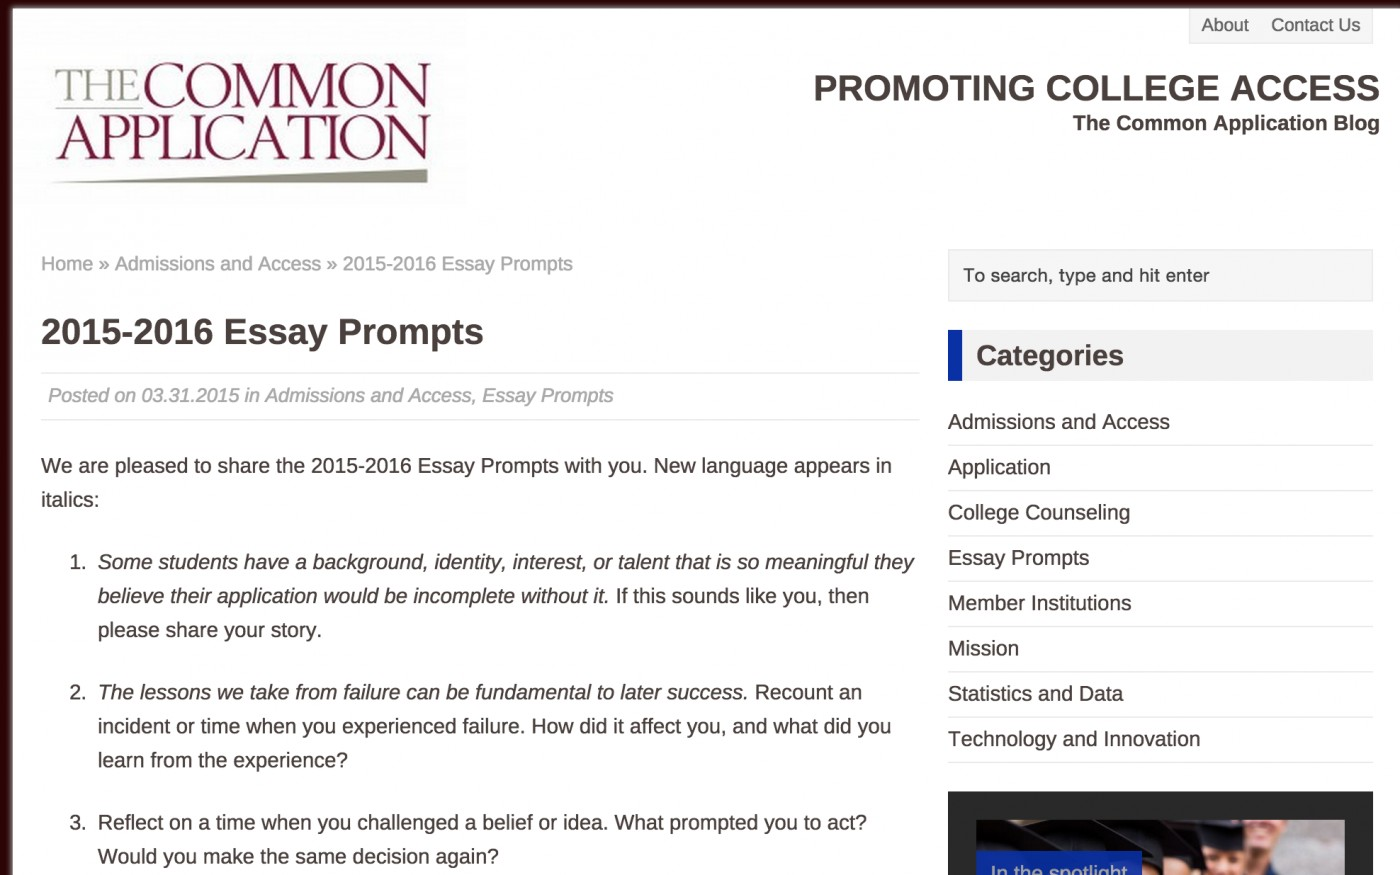 001 Essay Example Screen Shot At Pm Common App Staggering Questions 2020 2017-18 1400